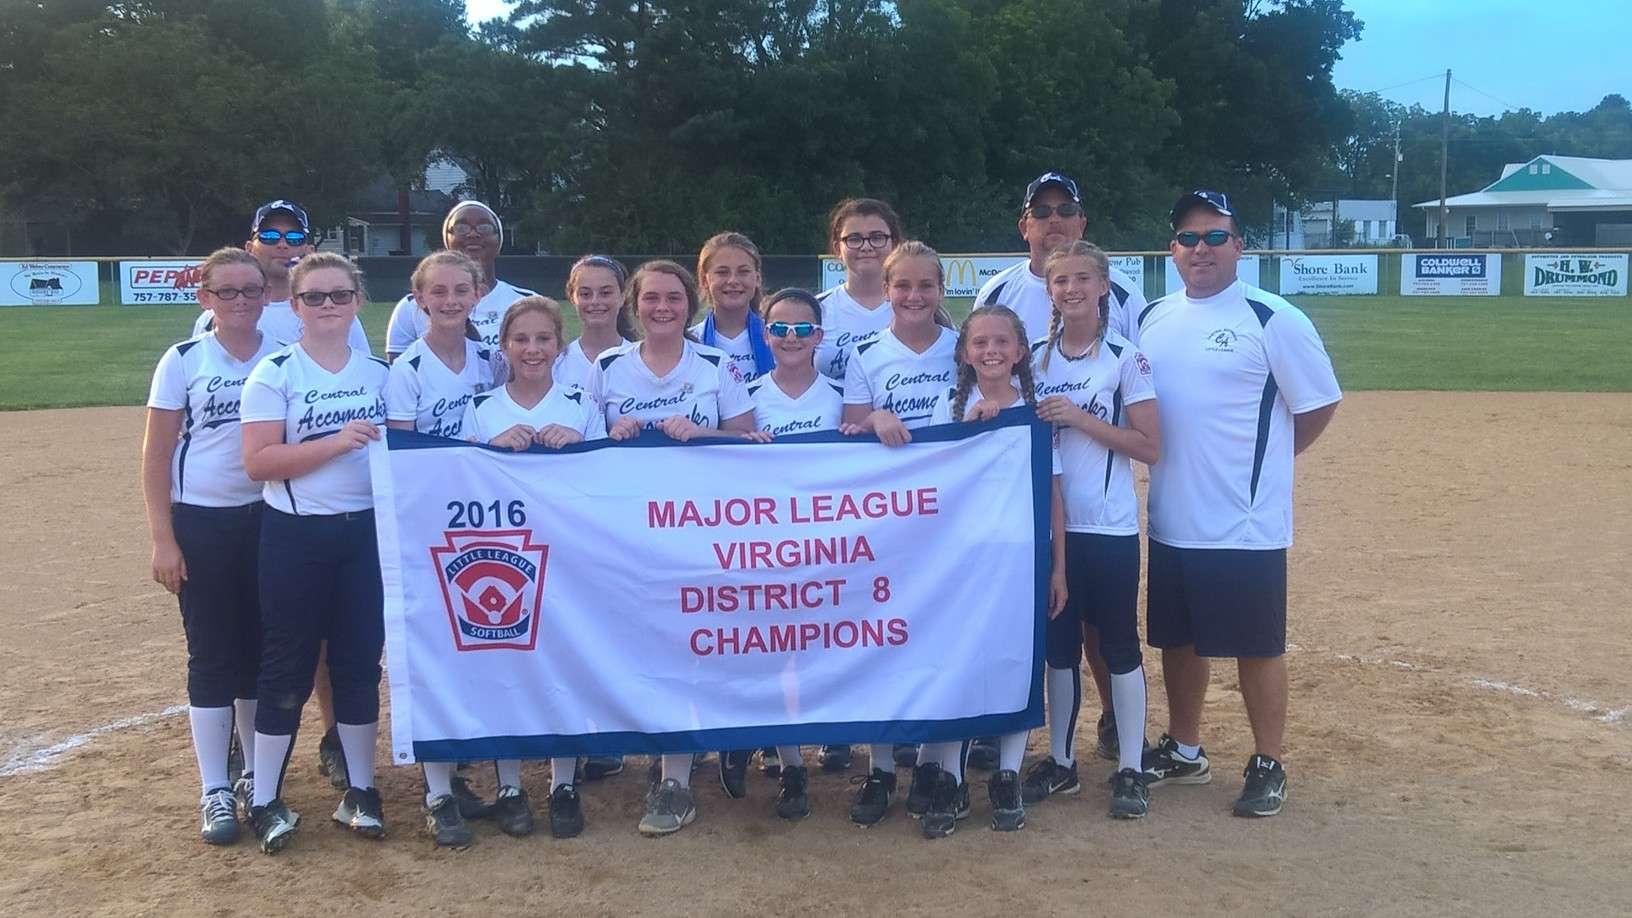 Sports Interview Of The Week – Central Accomack Major Softball Coach Wayne Greer